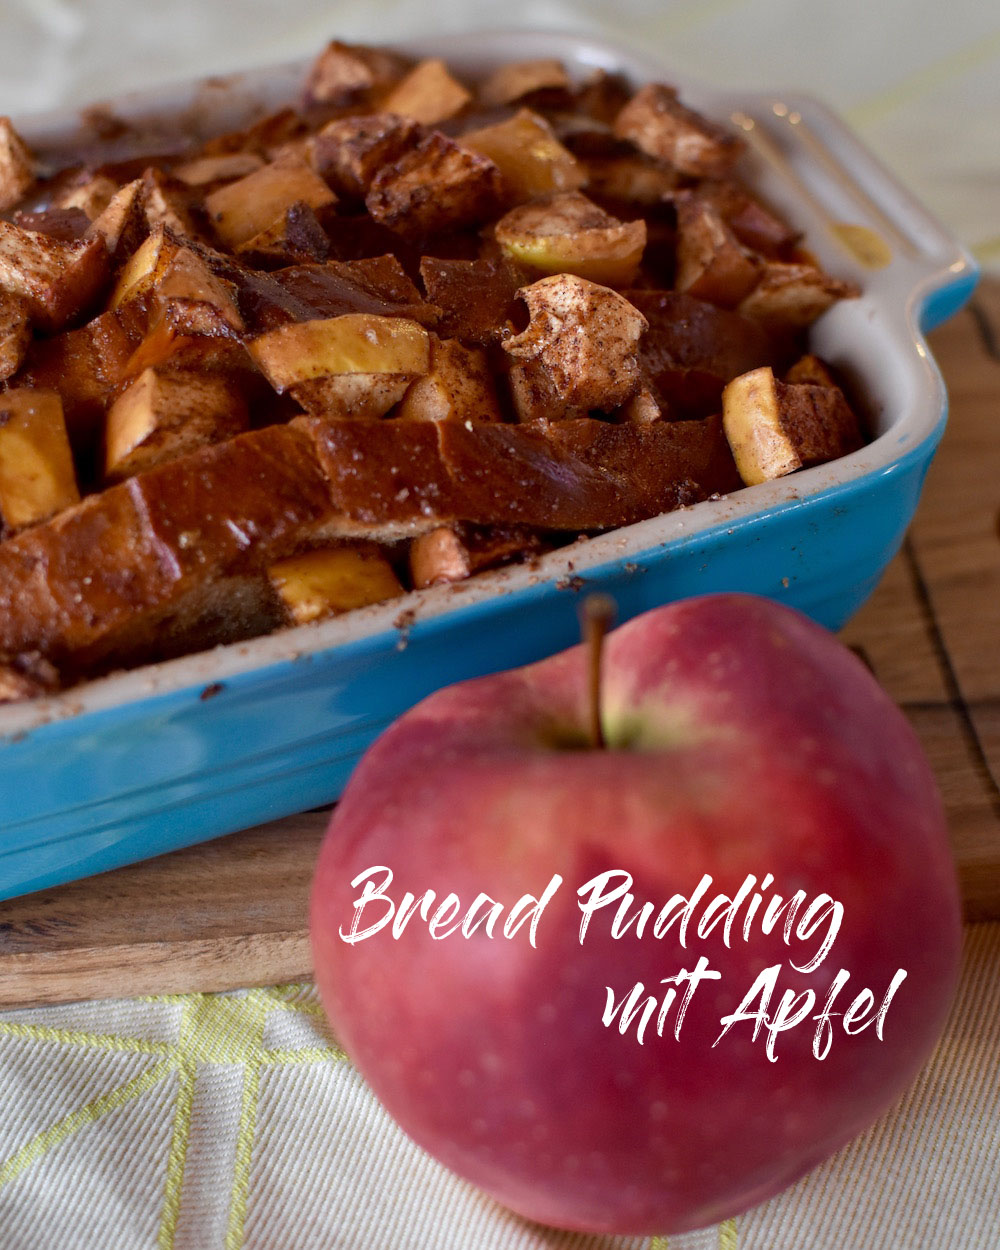 Bratapfel Bread Pudding